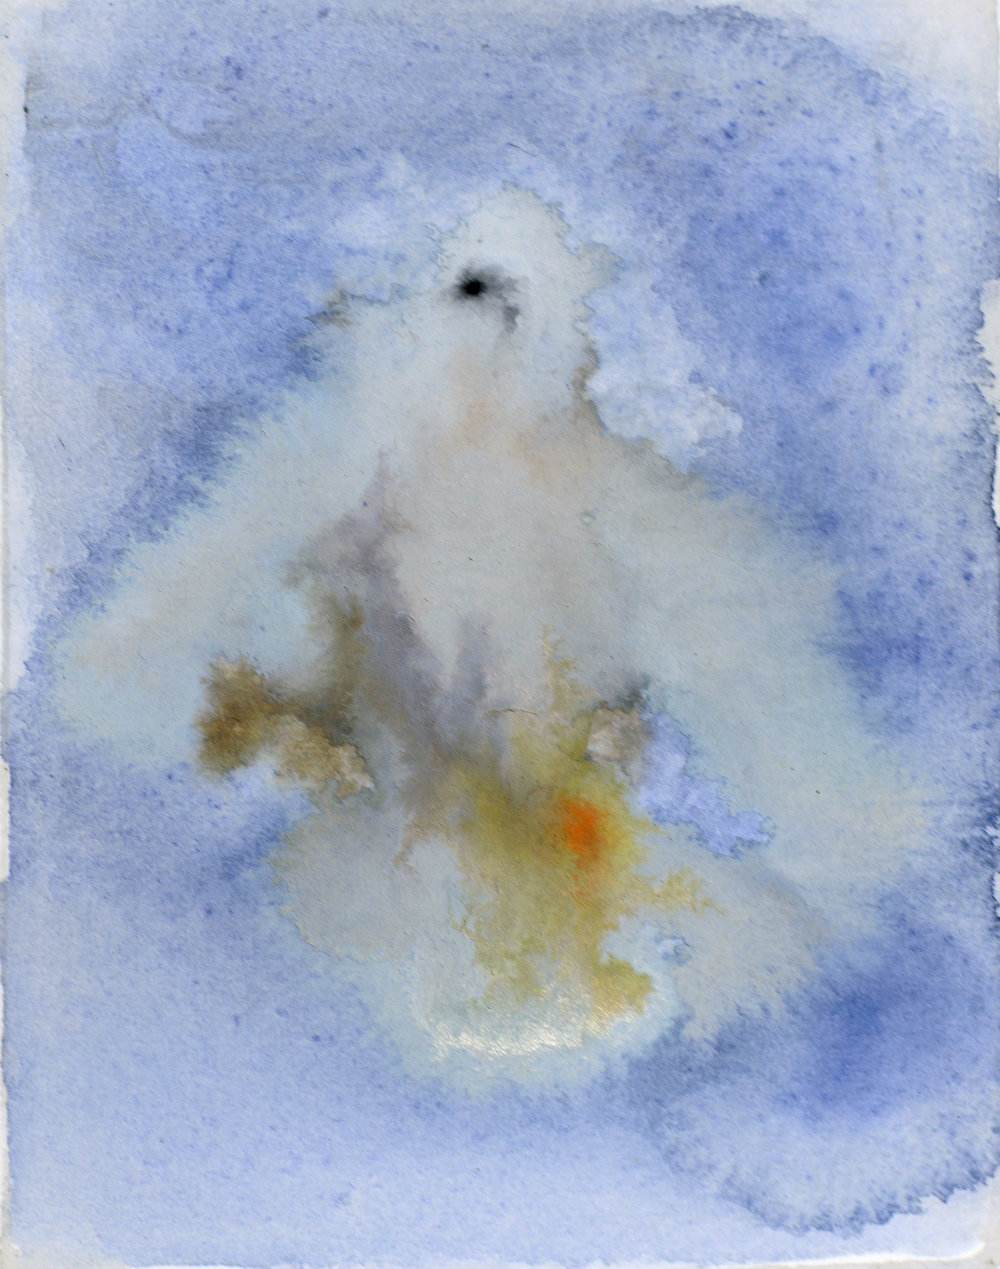 Rebecca_Kinkead_White Dove (Day)_4x3 inset on 11x7.5.jpg